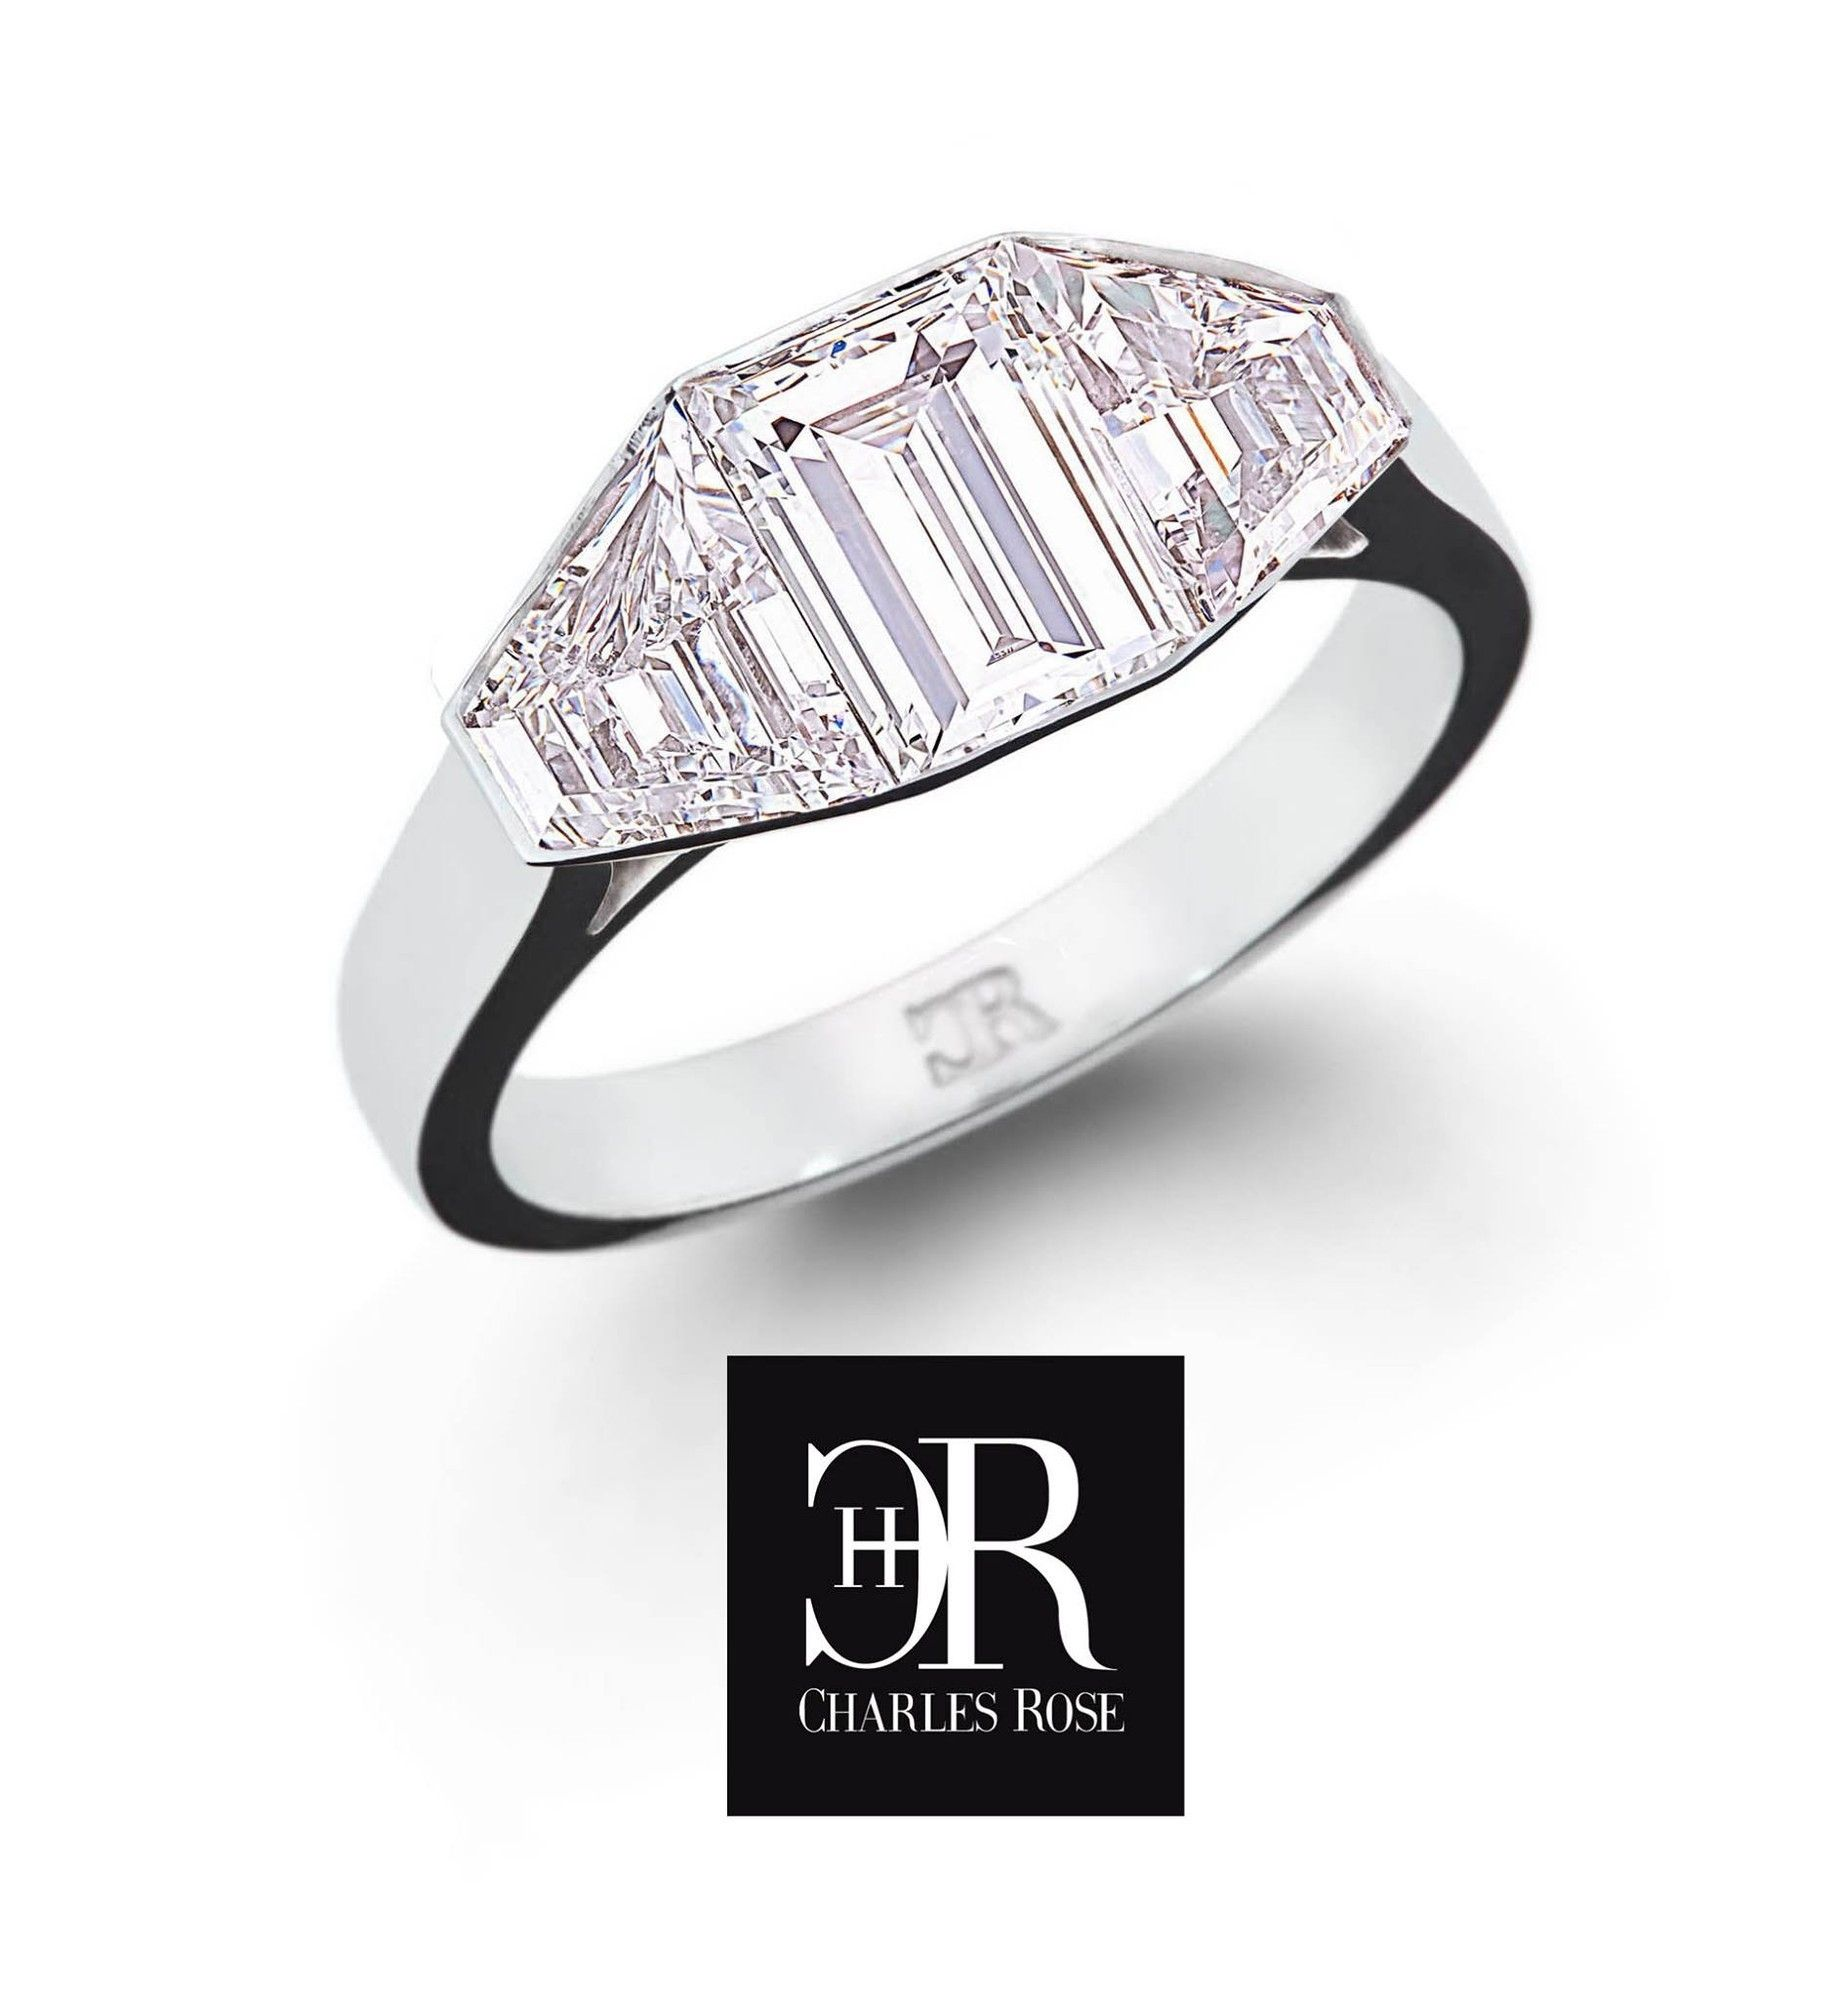 Fancy Trapeze and Emerald cut Cluster. This very fine ring is made to order. Exclusive to Charles Rose, and featuring a matched collection of gems of superior quality. #charlesrosejewellers #charlesrose #emerald #ring #handmade #stunning